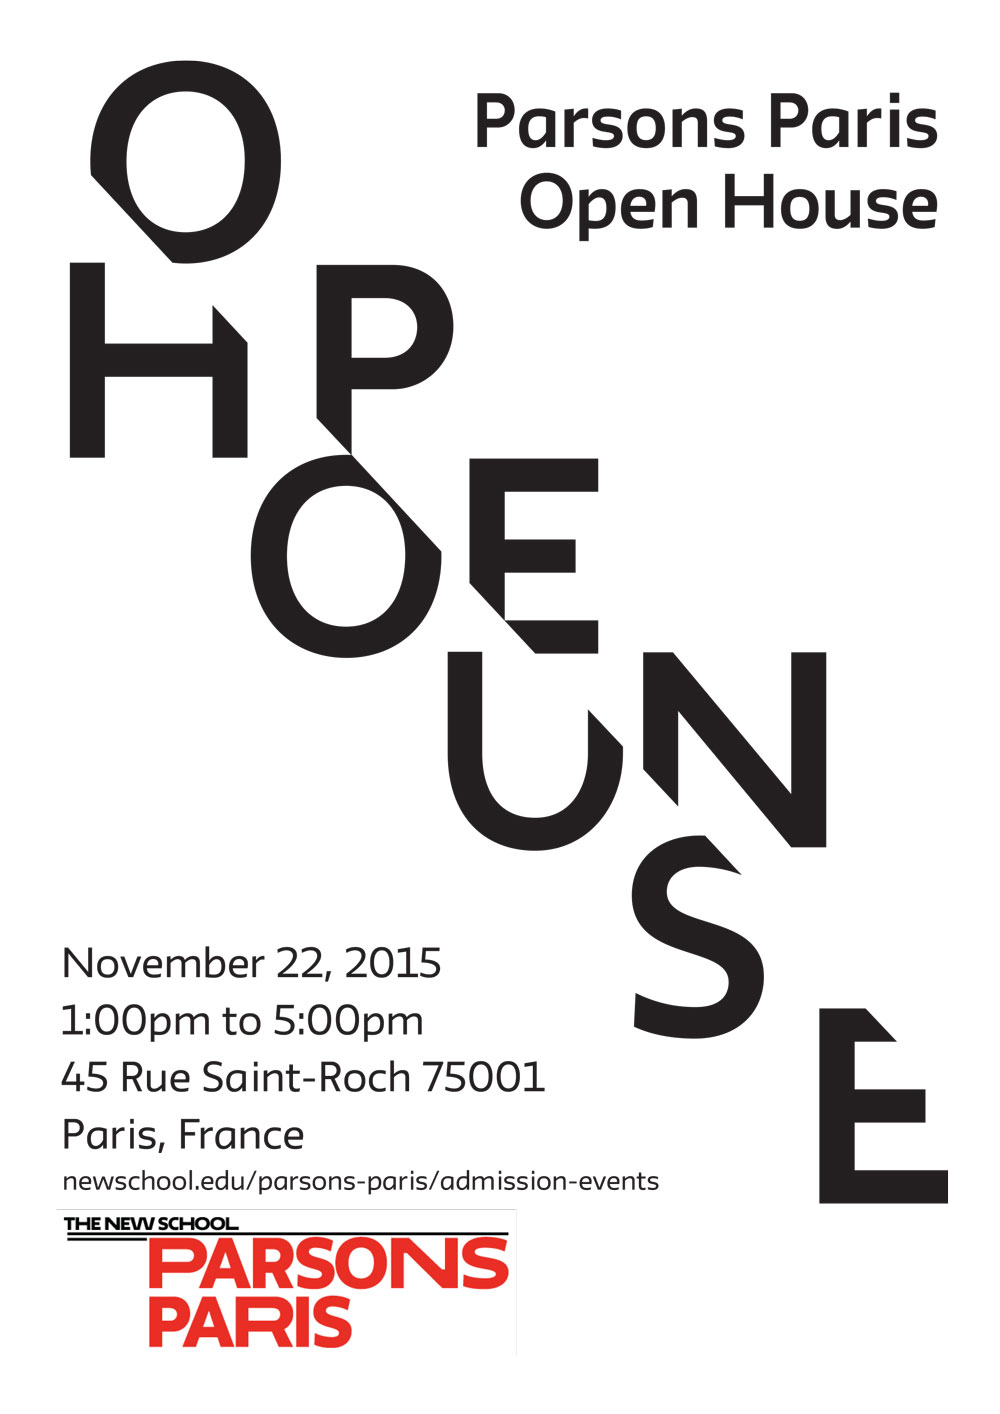 OH_open_house1